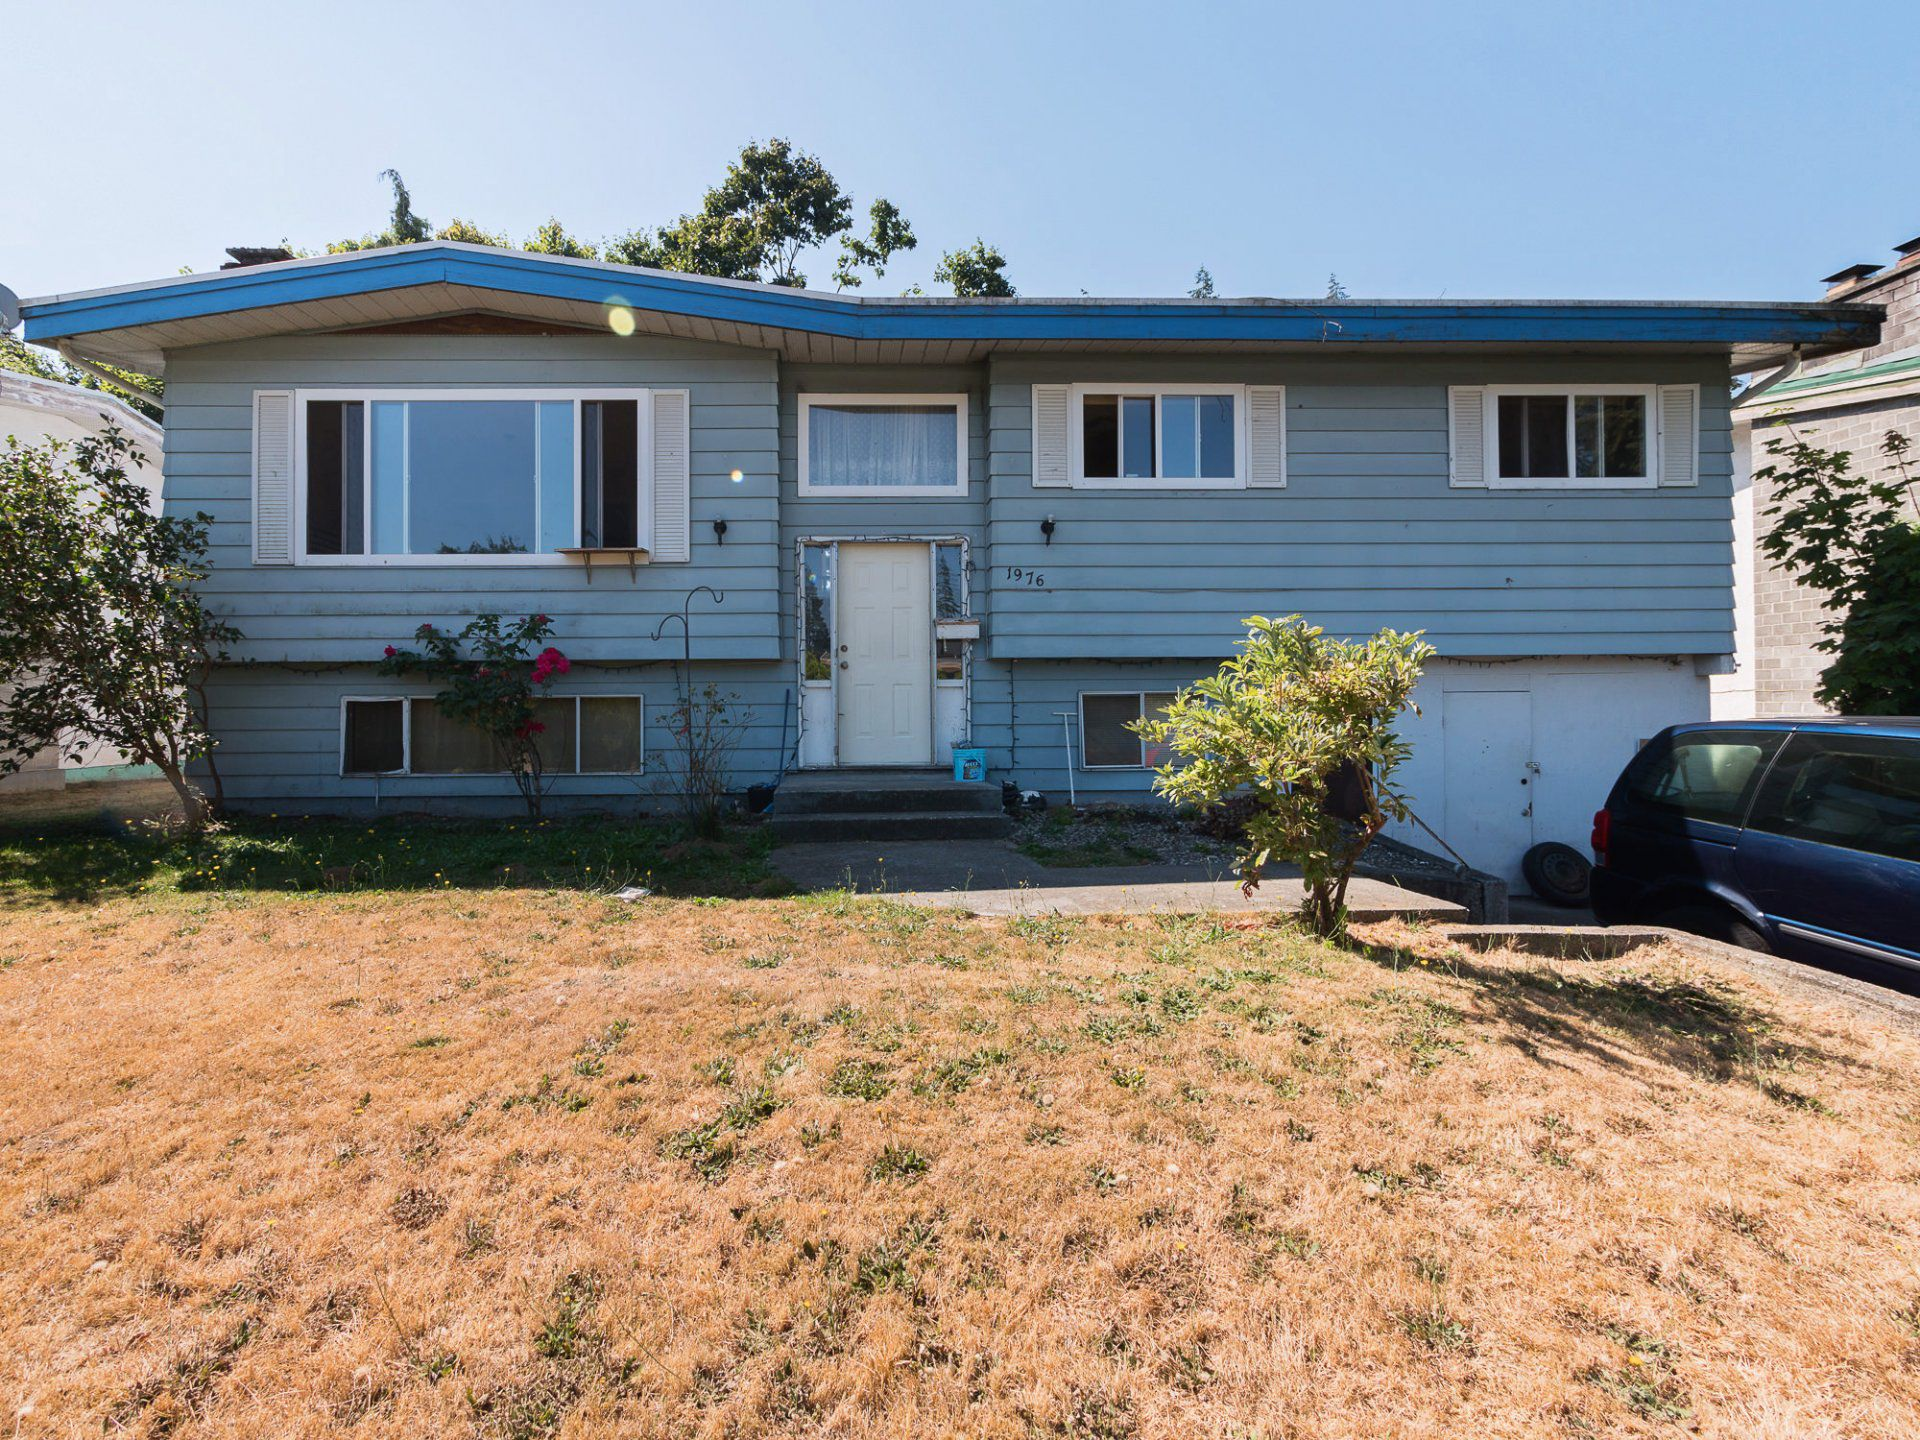 Main Photo: 1976 CATALINA Crescent in Abbotsford: Abbotsford West House for sale : MLS®# R2294738